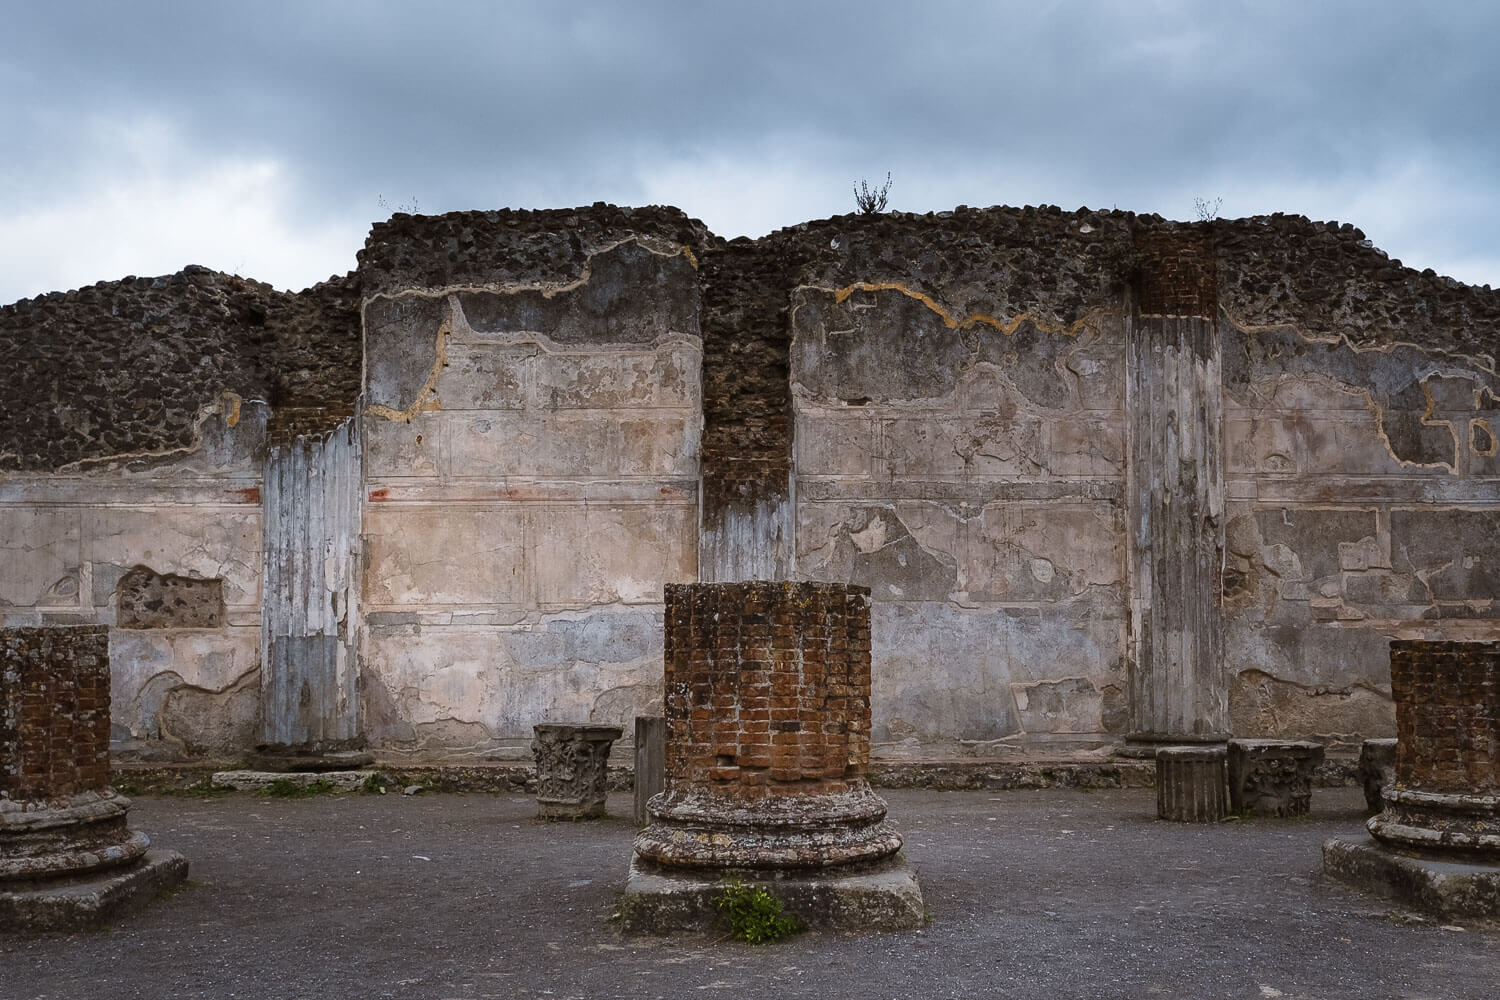 """The forum of Pompeii. Travel photography and guide by © Natasha Lequepeys for """"And Then I Met Yoko"""". #pompeii #italy #fujifilm #travelphotography"""